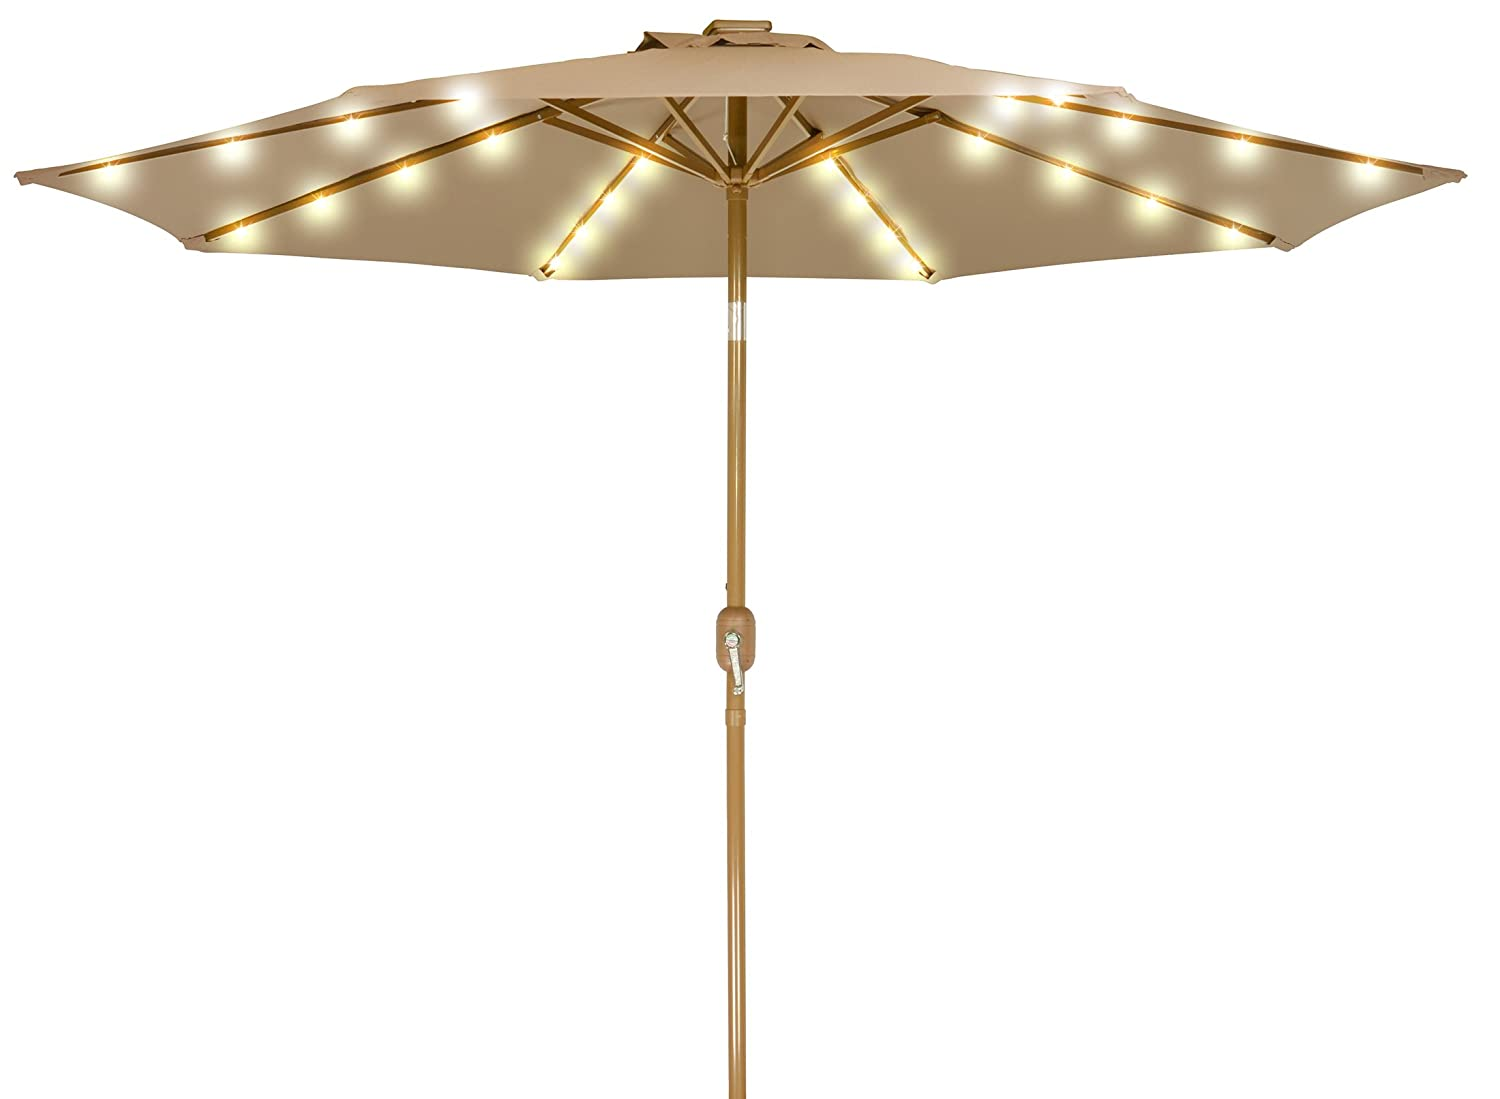 Home Comfort 9 Solar Powered LED Lighted Patio Umbrella with Bronze Finish Frame Tan